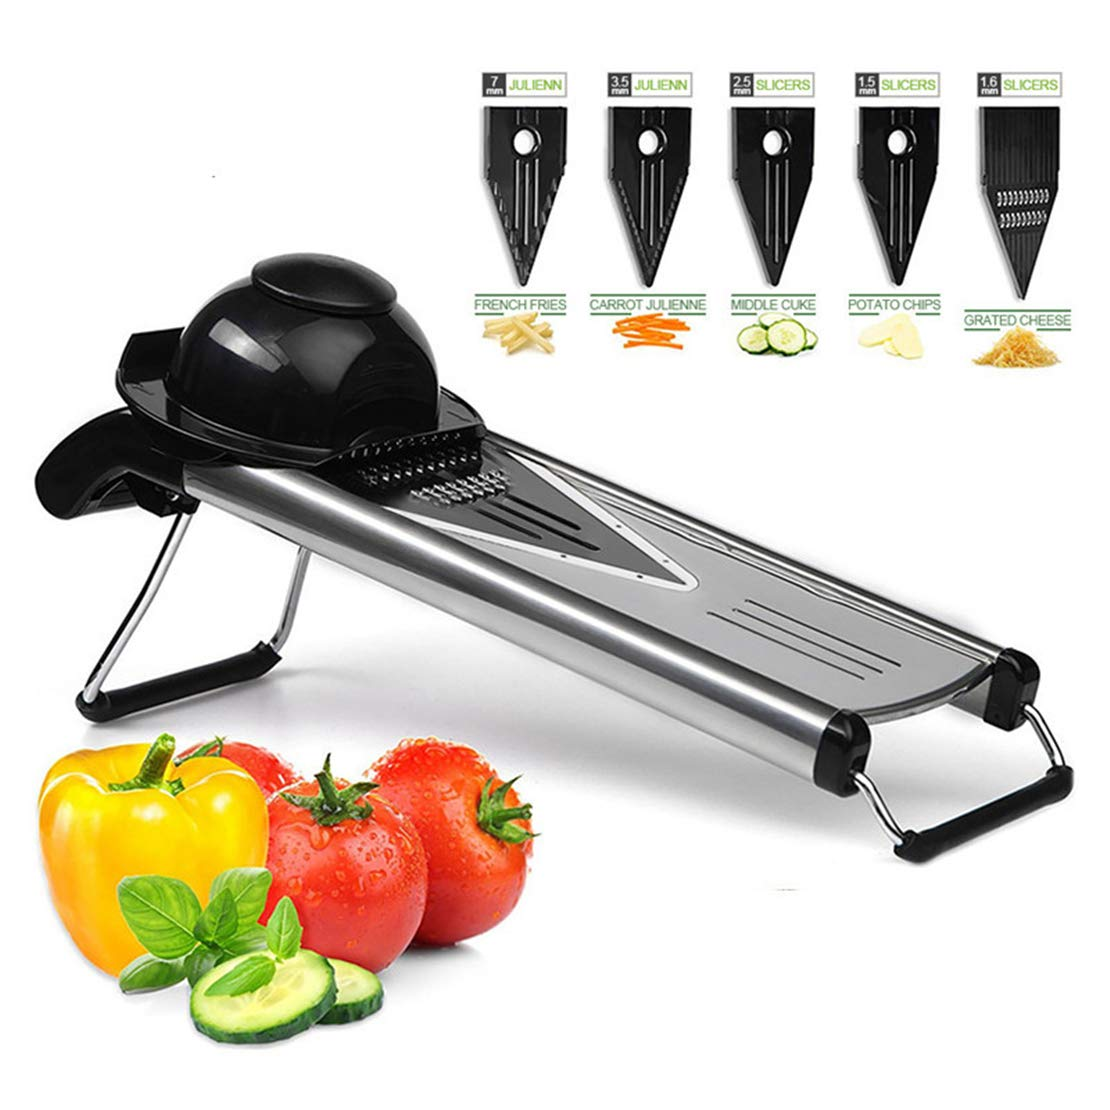 Cool furniture Mandala Slicer Vegetable Cutting Machine with Stainless Steel Blade Manual Potato Peeler Carrot Cheese Grater Dicing Machine Kitchen Tool by Cool furniture